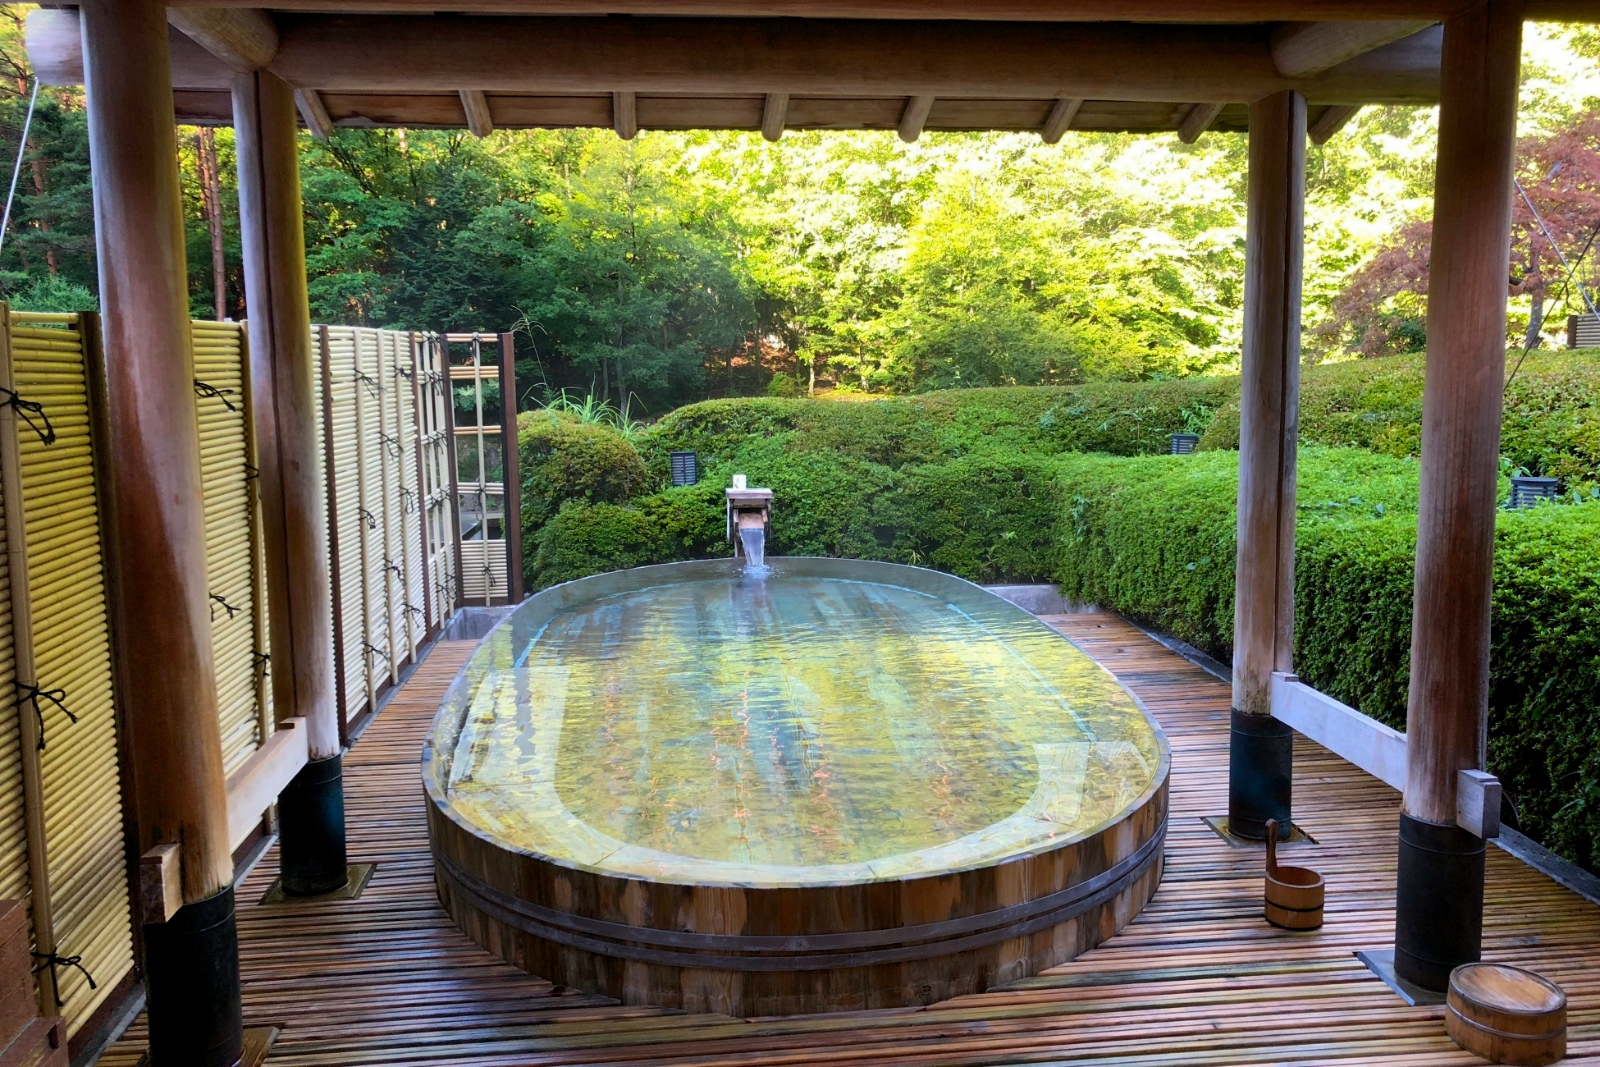 Boukei Springs, the hotel's observatory outdoor bath.